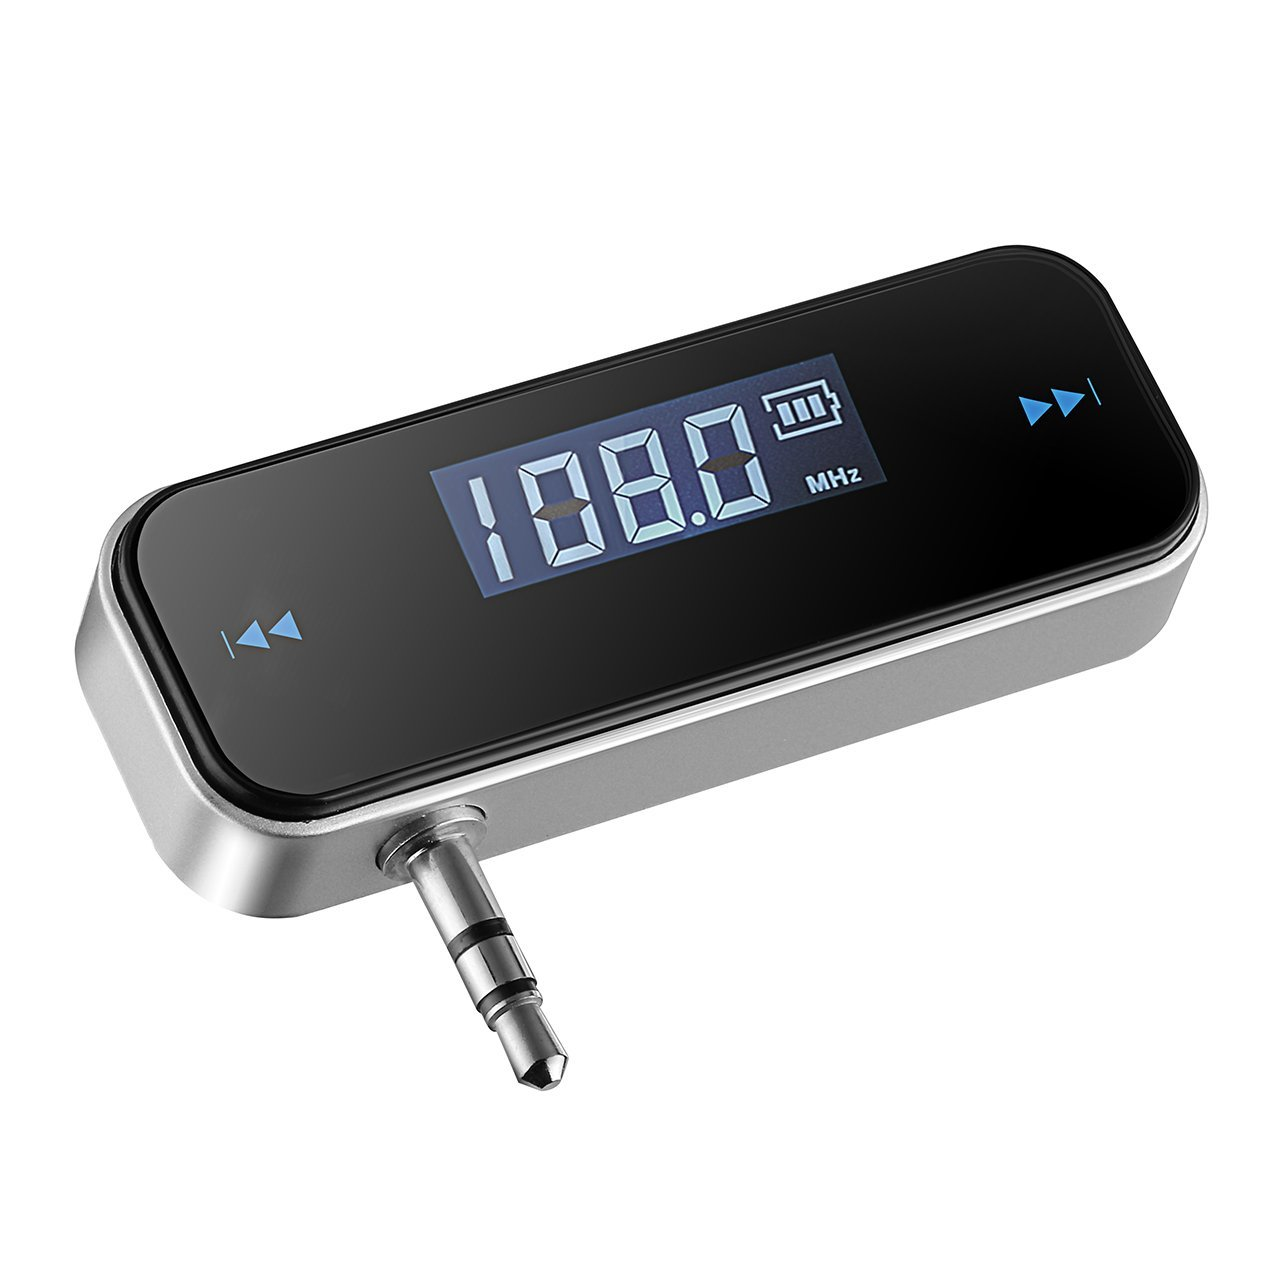 3.5mm In-car FM Transmitter Radio Adapter for iPod iPad iPhone 6 5S 5C 5 4S 4 Samsung Galaxsy S4 S3 HTC Tablet,MP3/MP4 Players image